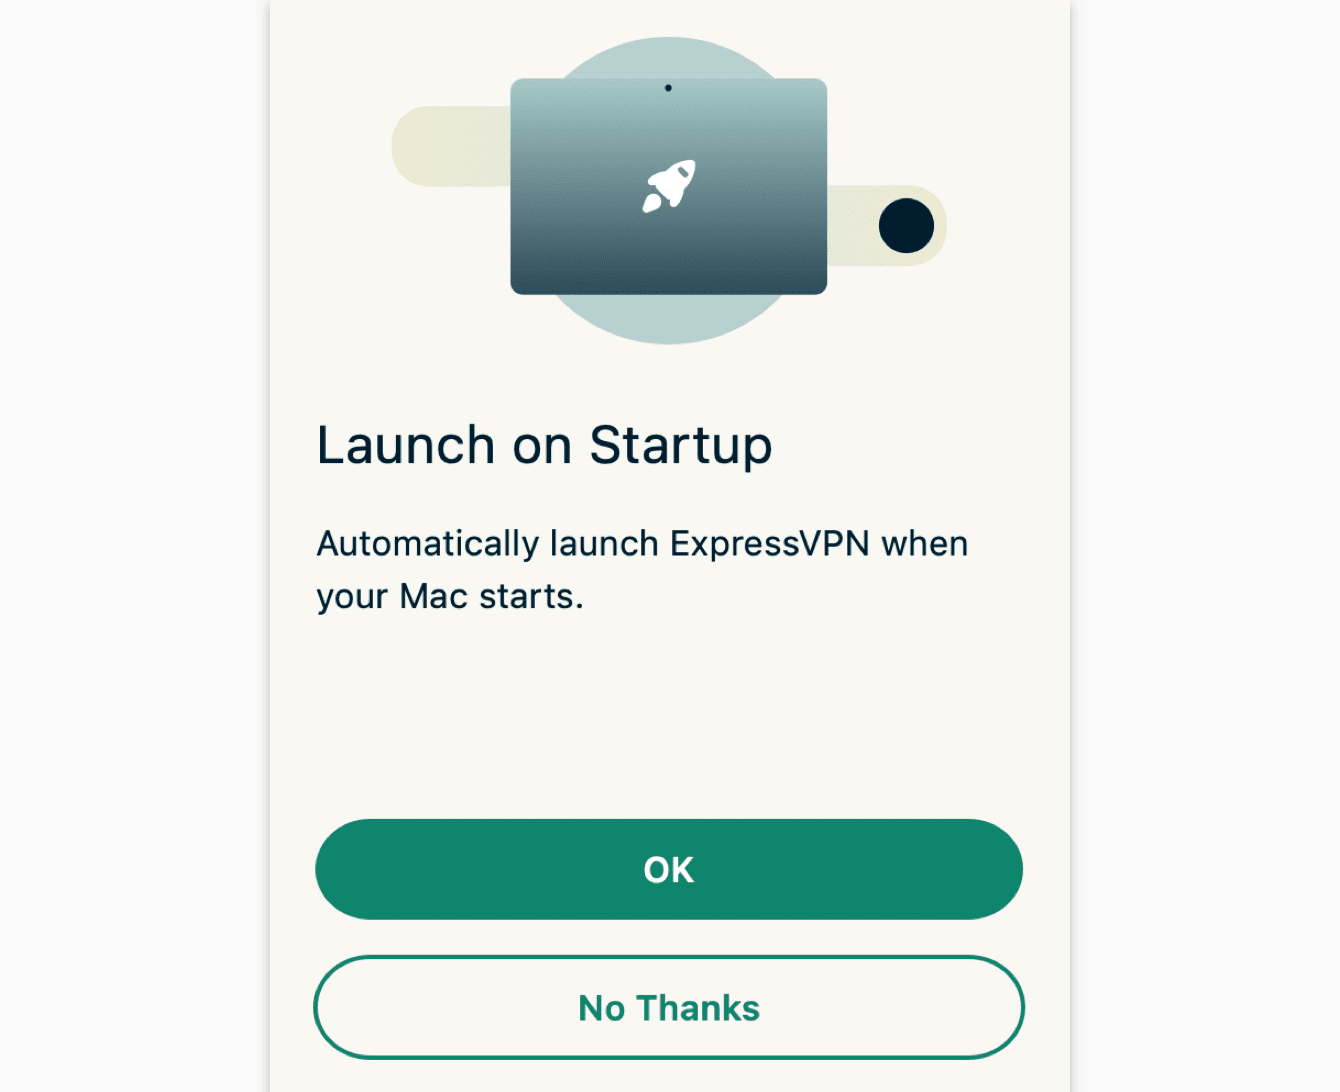 Select your preference for launching ExpressVPN when your computer starts.